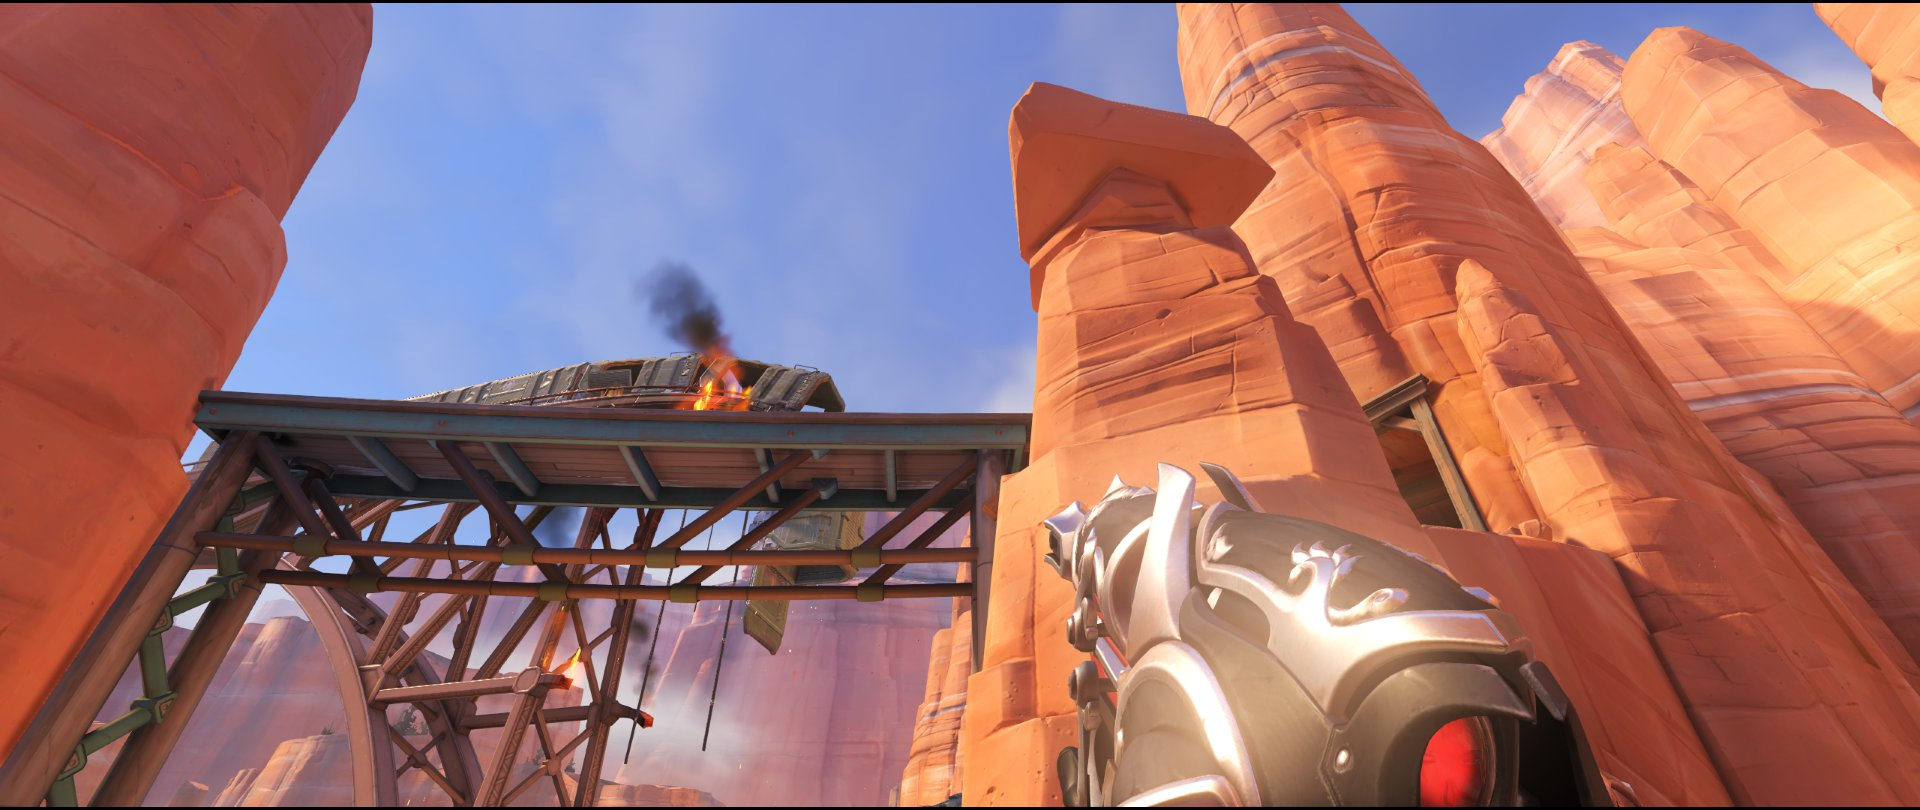 Arch area defense sniping spot Widowmaker Route 66